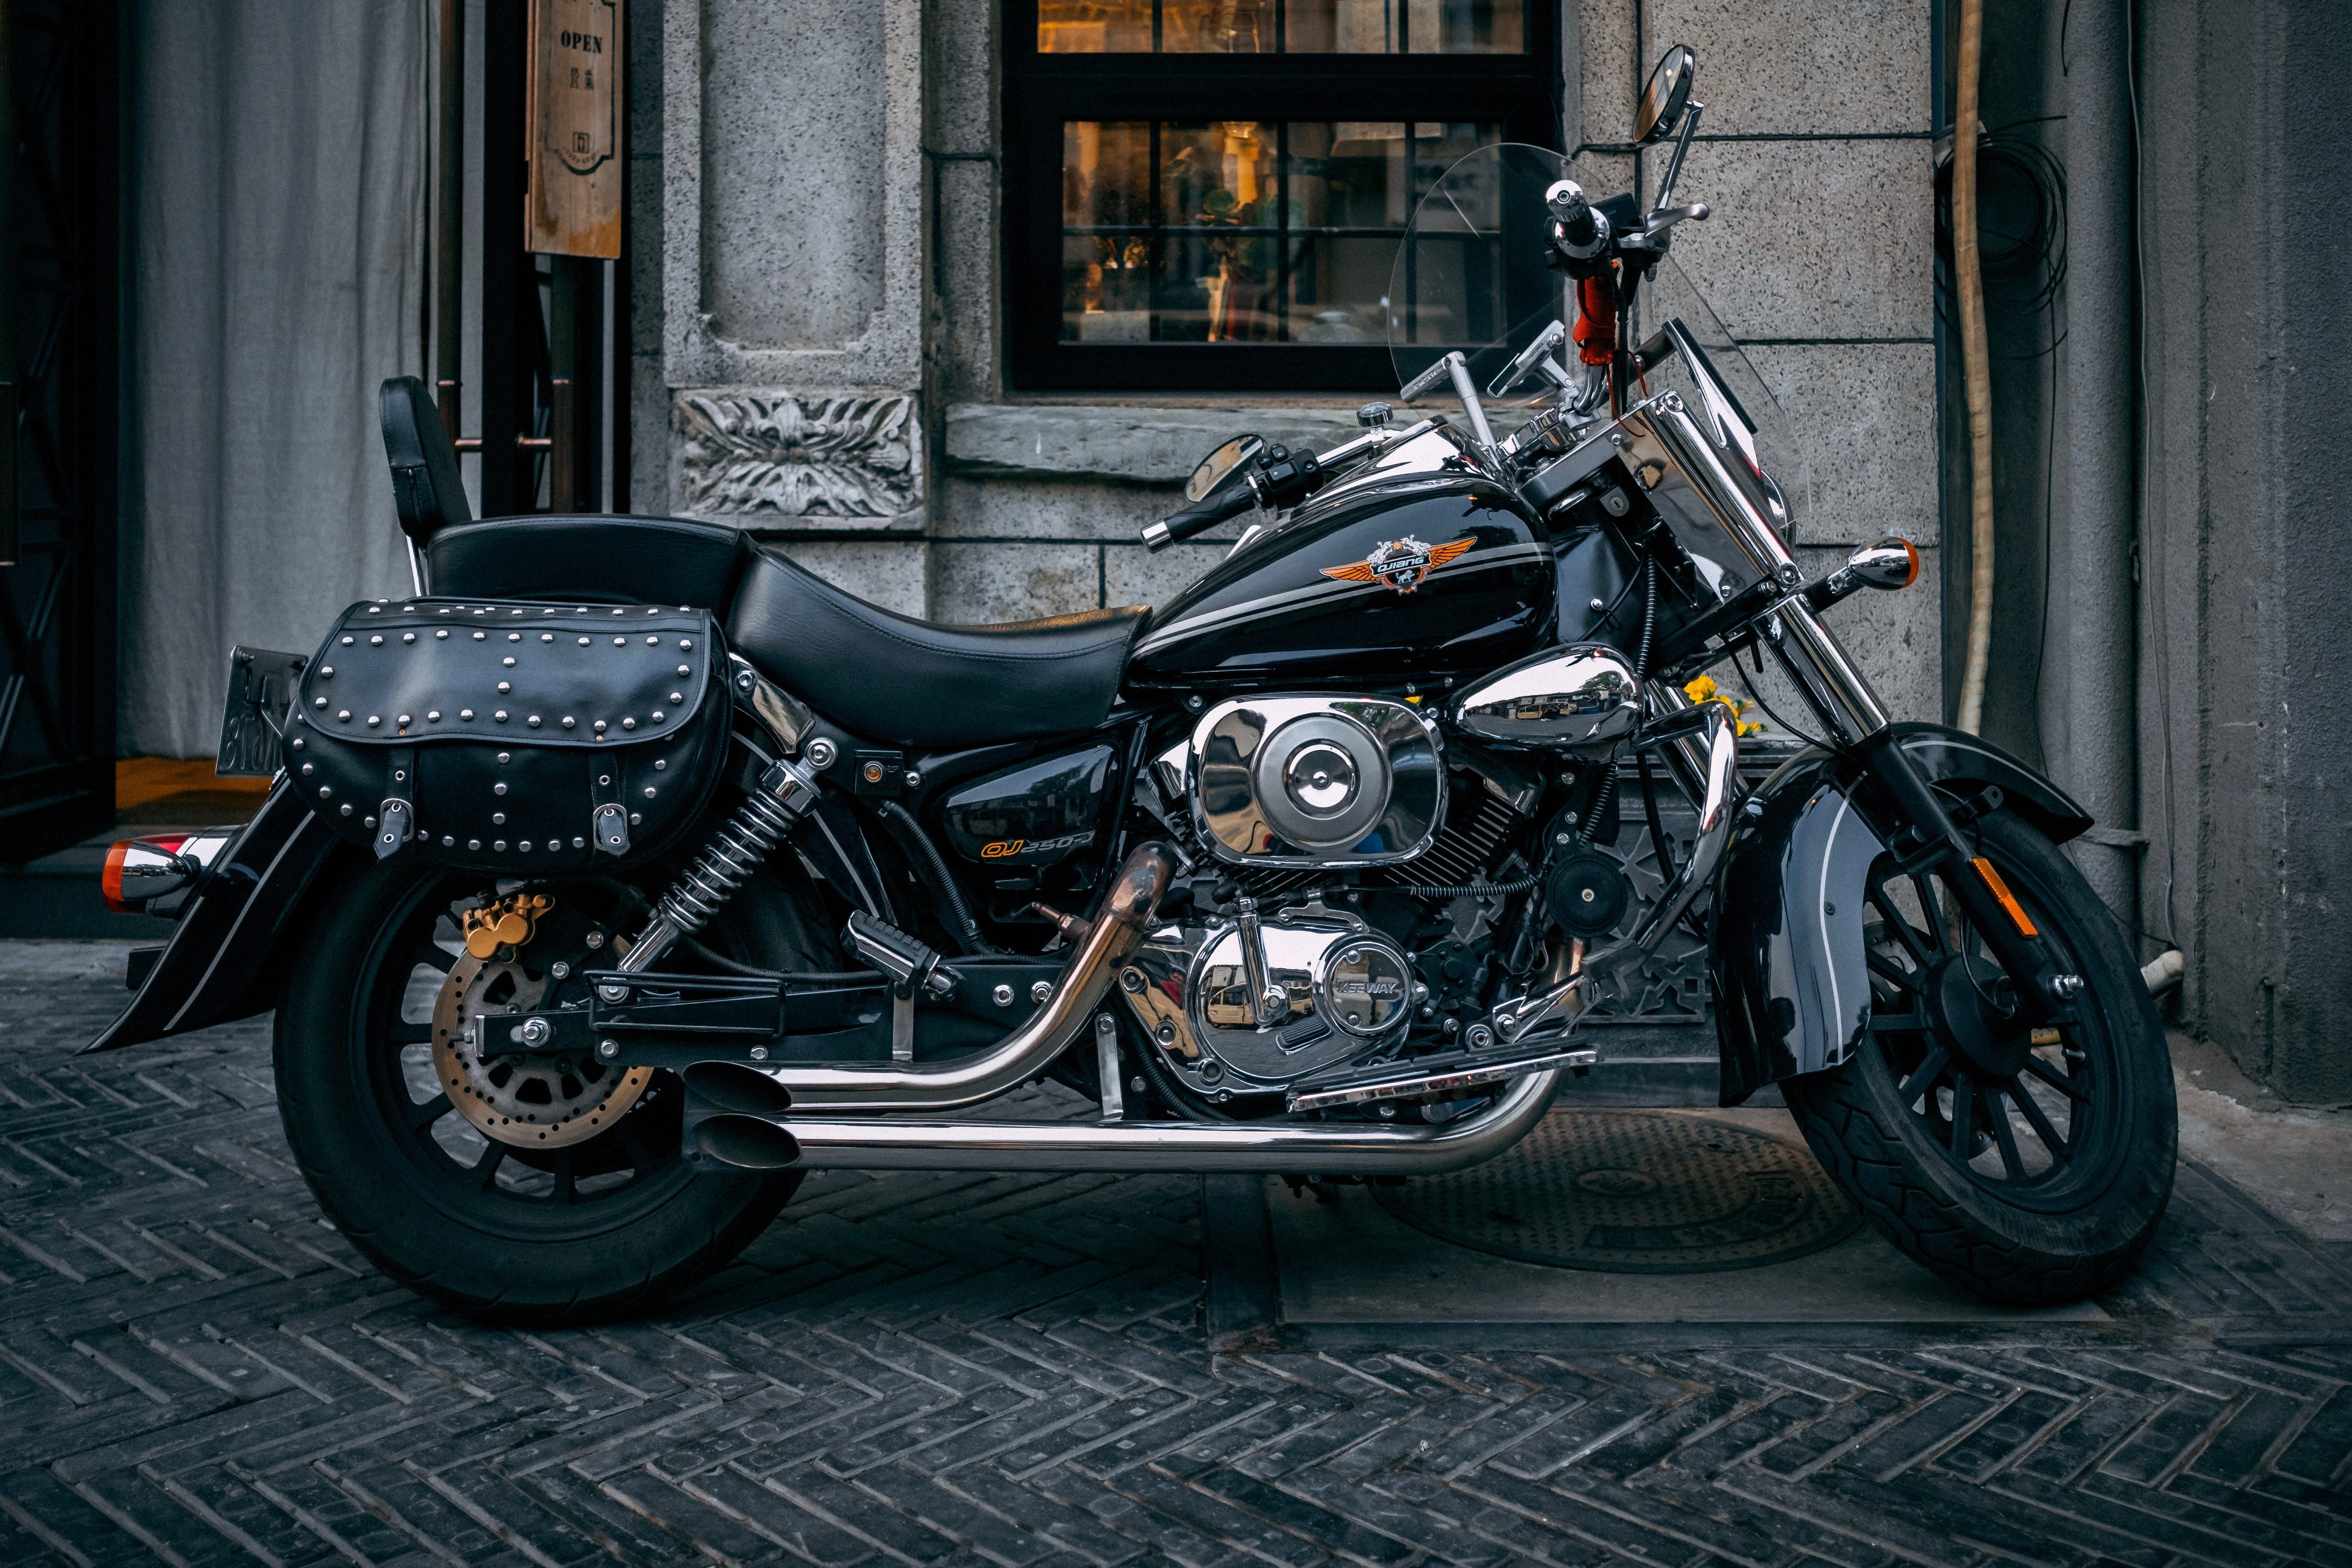 black and gray touring motorcycle parked near window